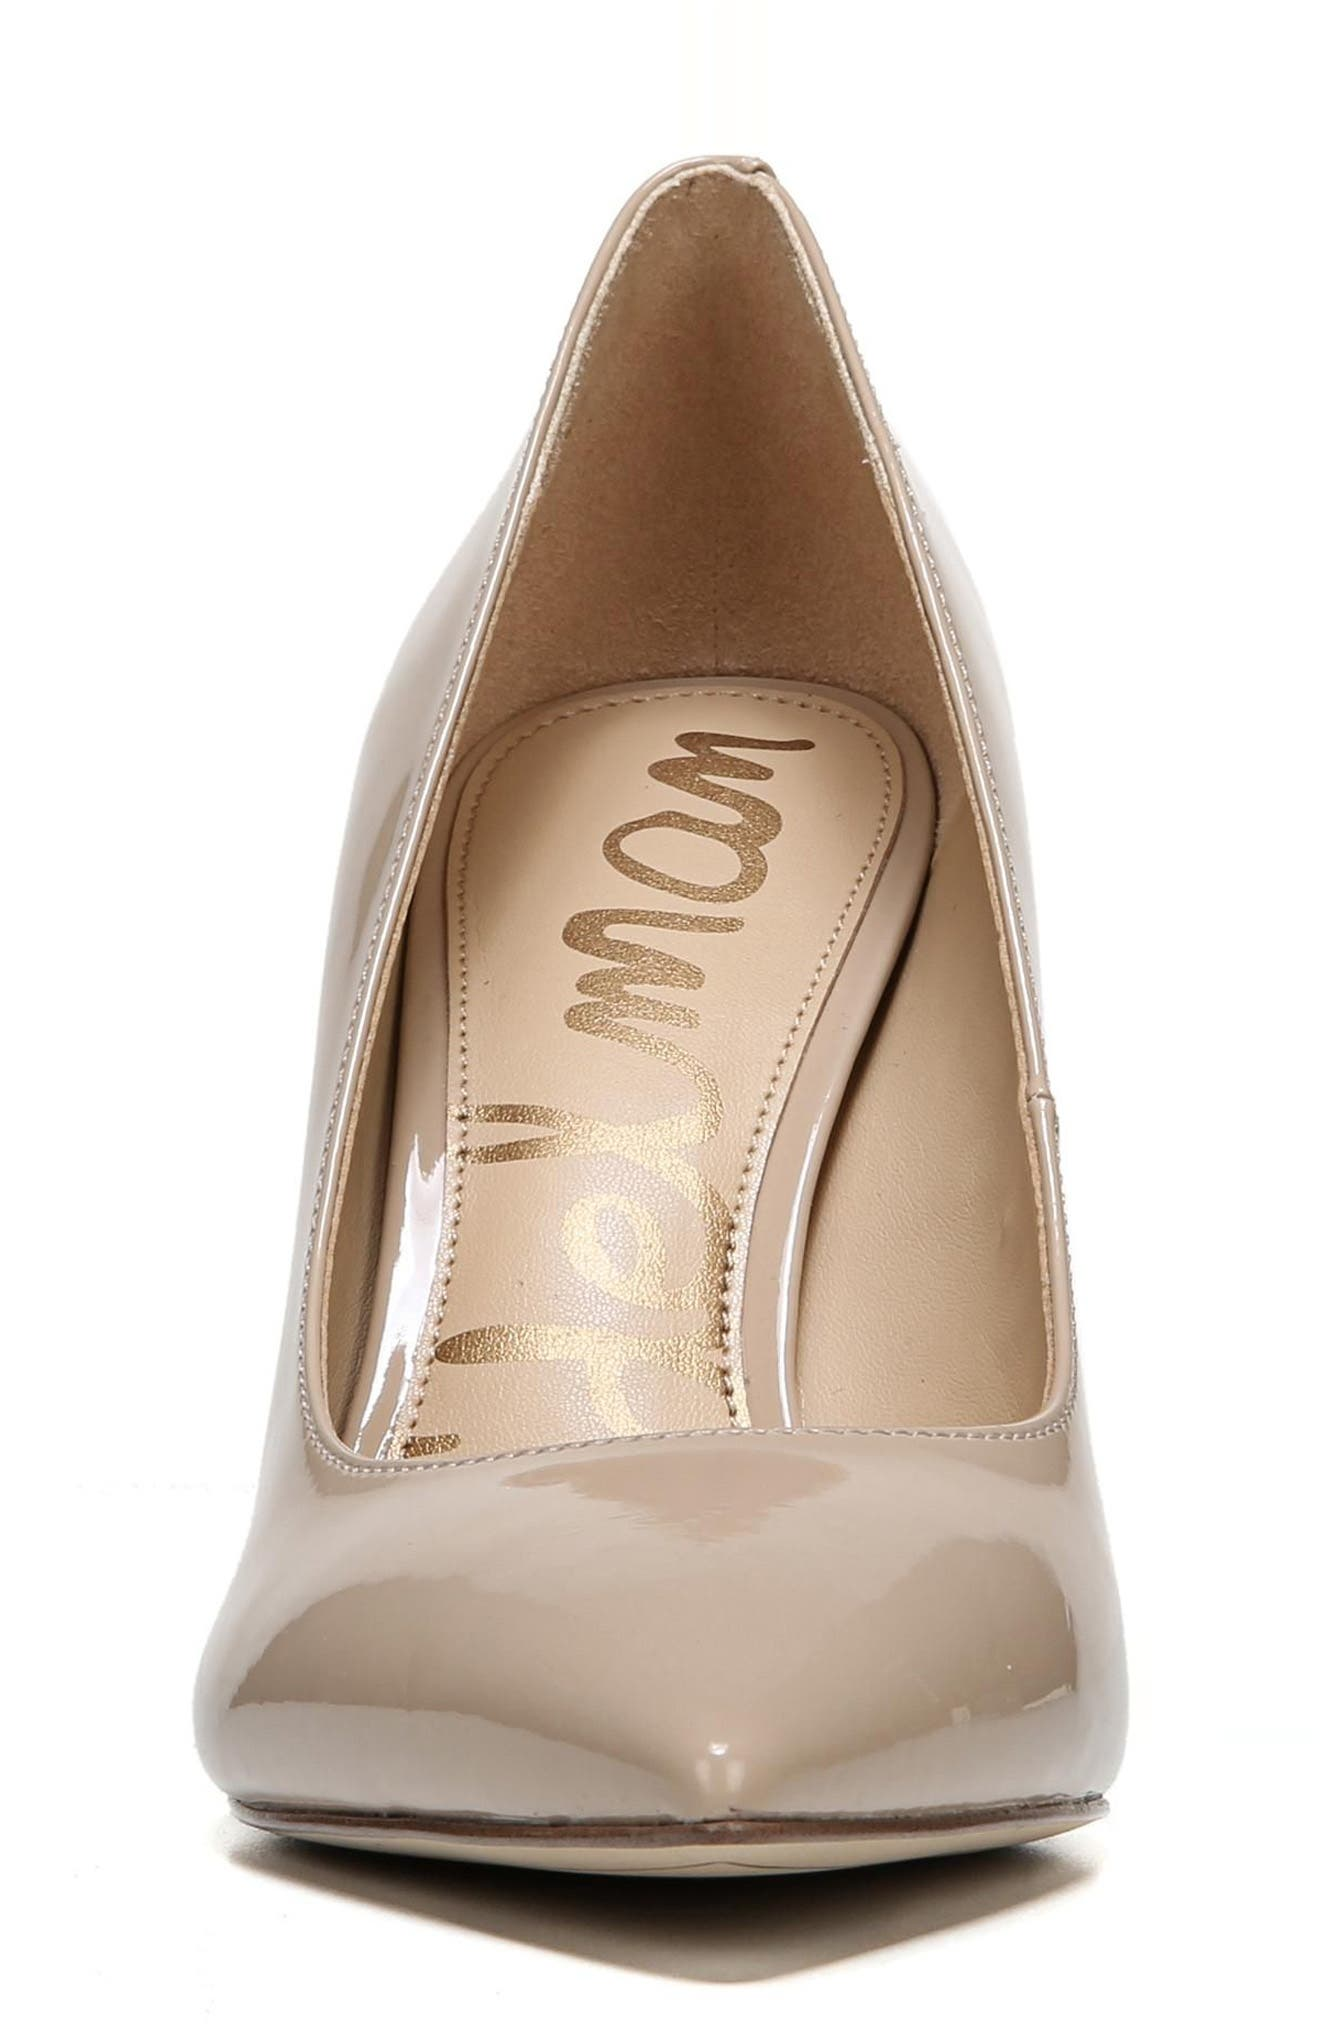 SAM EDELMAN, Hazel Pointy Toe Pump, Alternate thumbnail 3, color, NUDE LINEN PATENT LEATHER